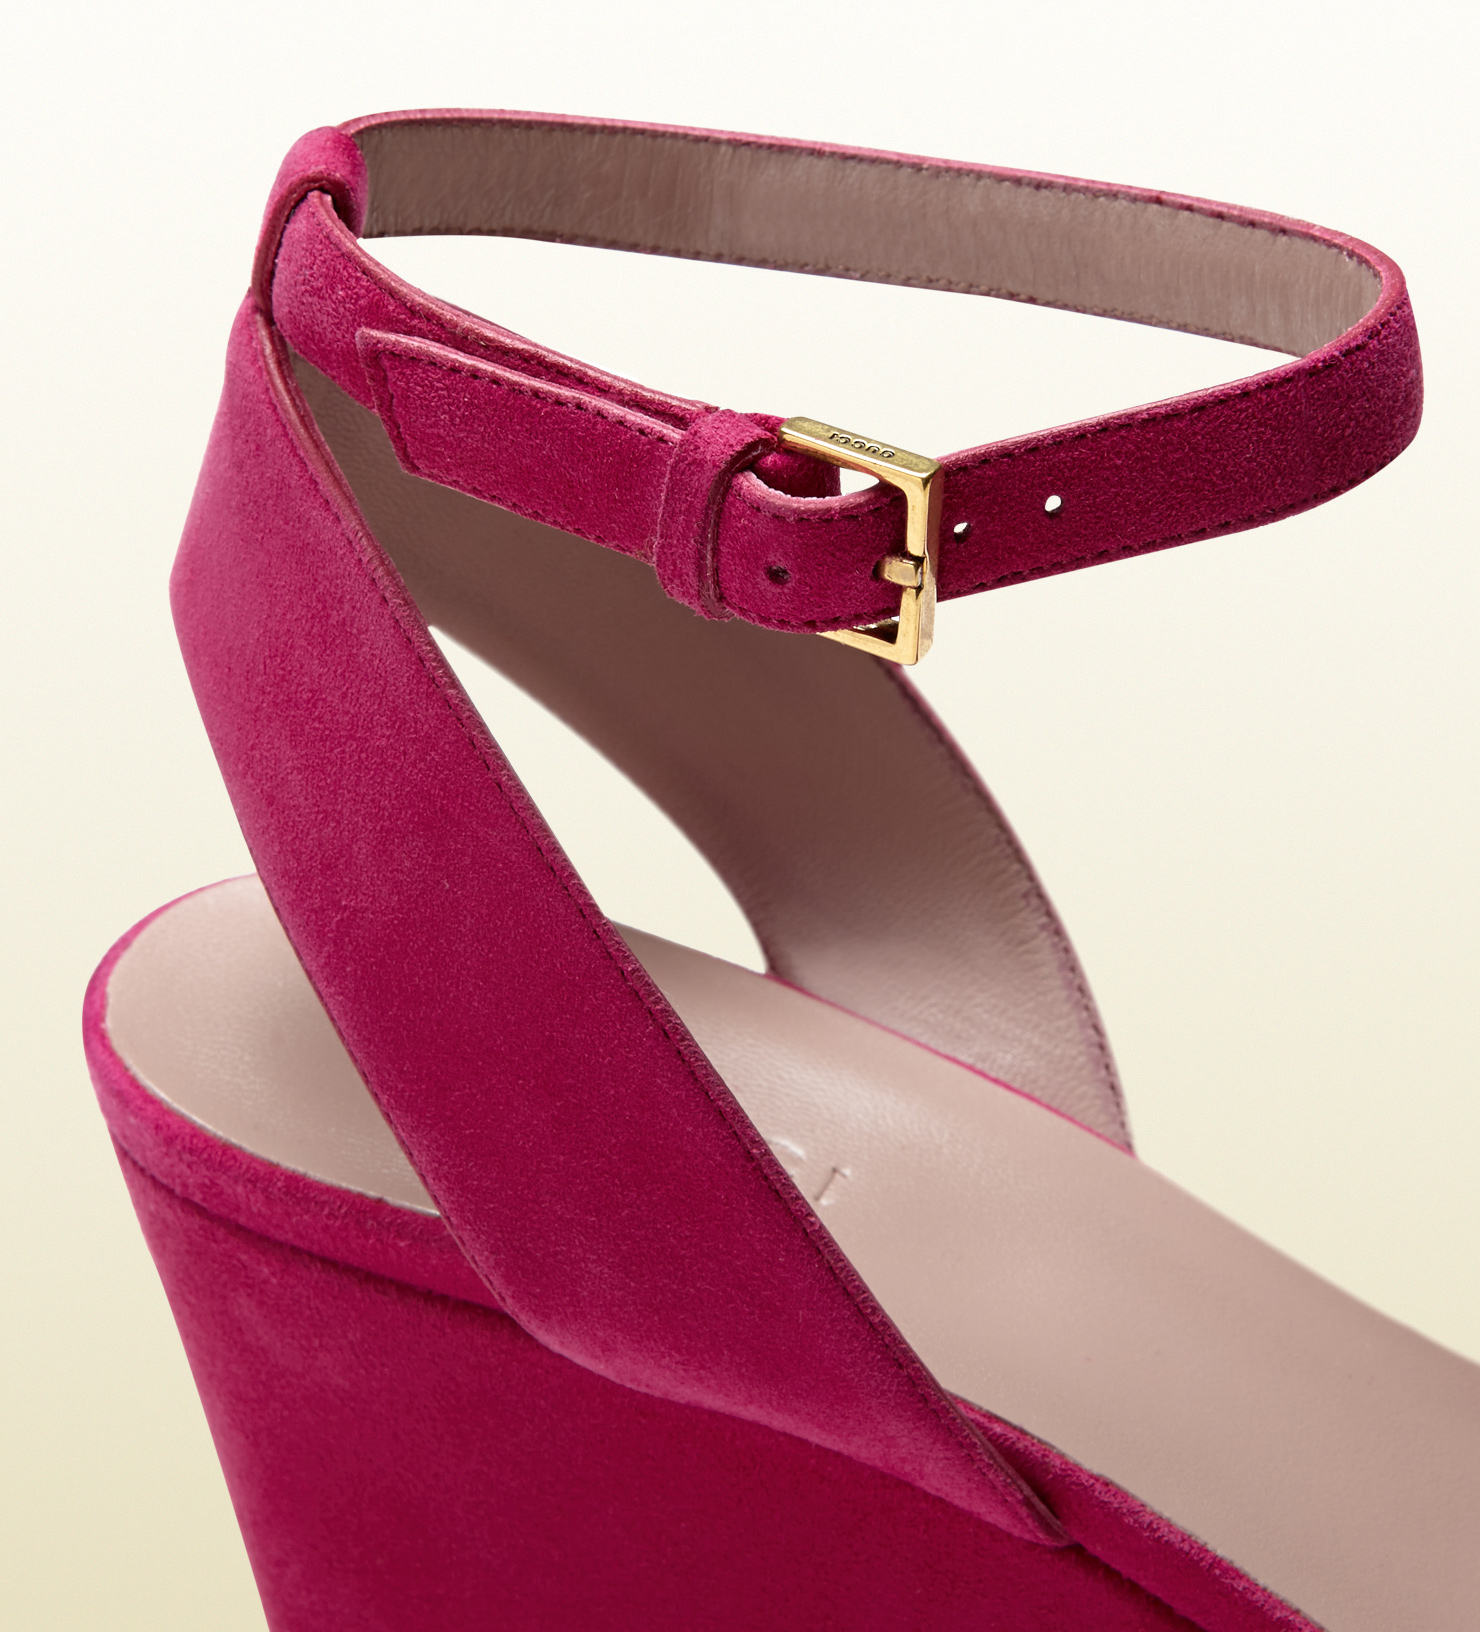 8aff2805f7 Gucci Suede Mid Heel Wedge Sandal in Pink - Lyst